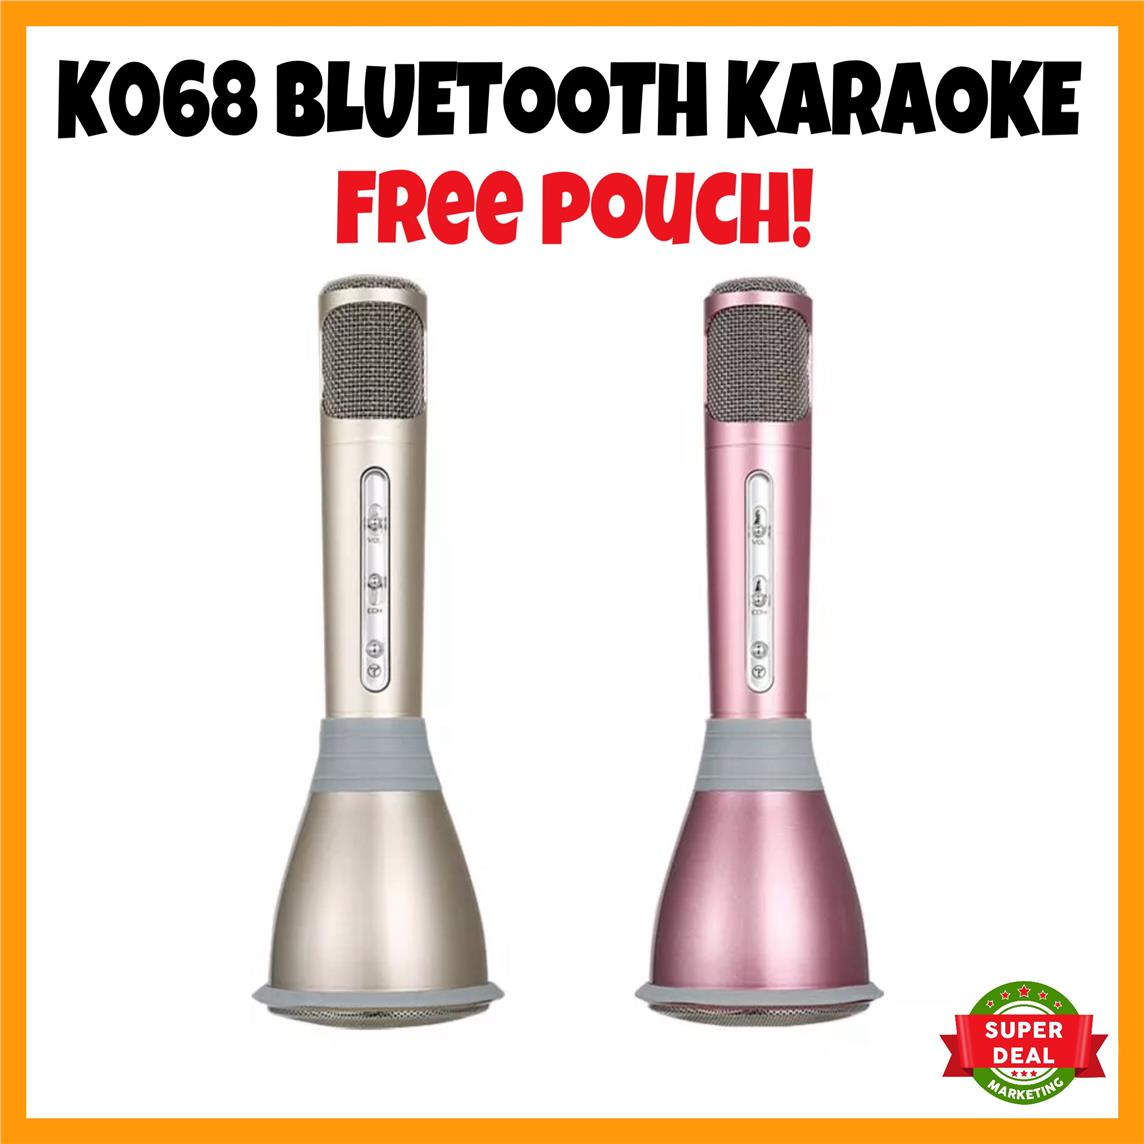 Bluetooth Microphone Bluetooth Karaoke K068 Portable Music Speaker